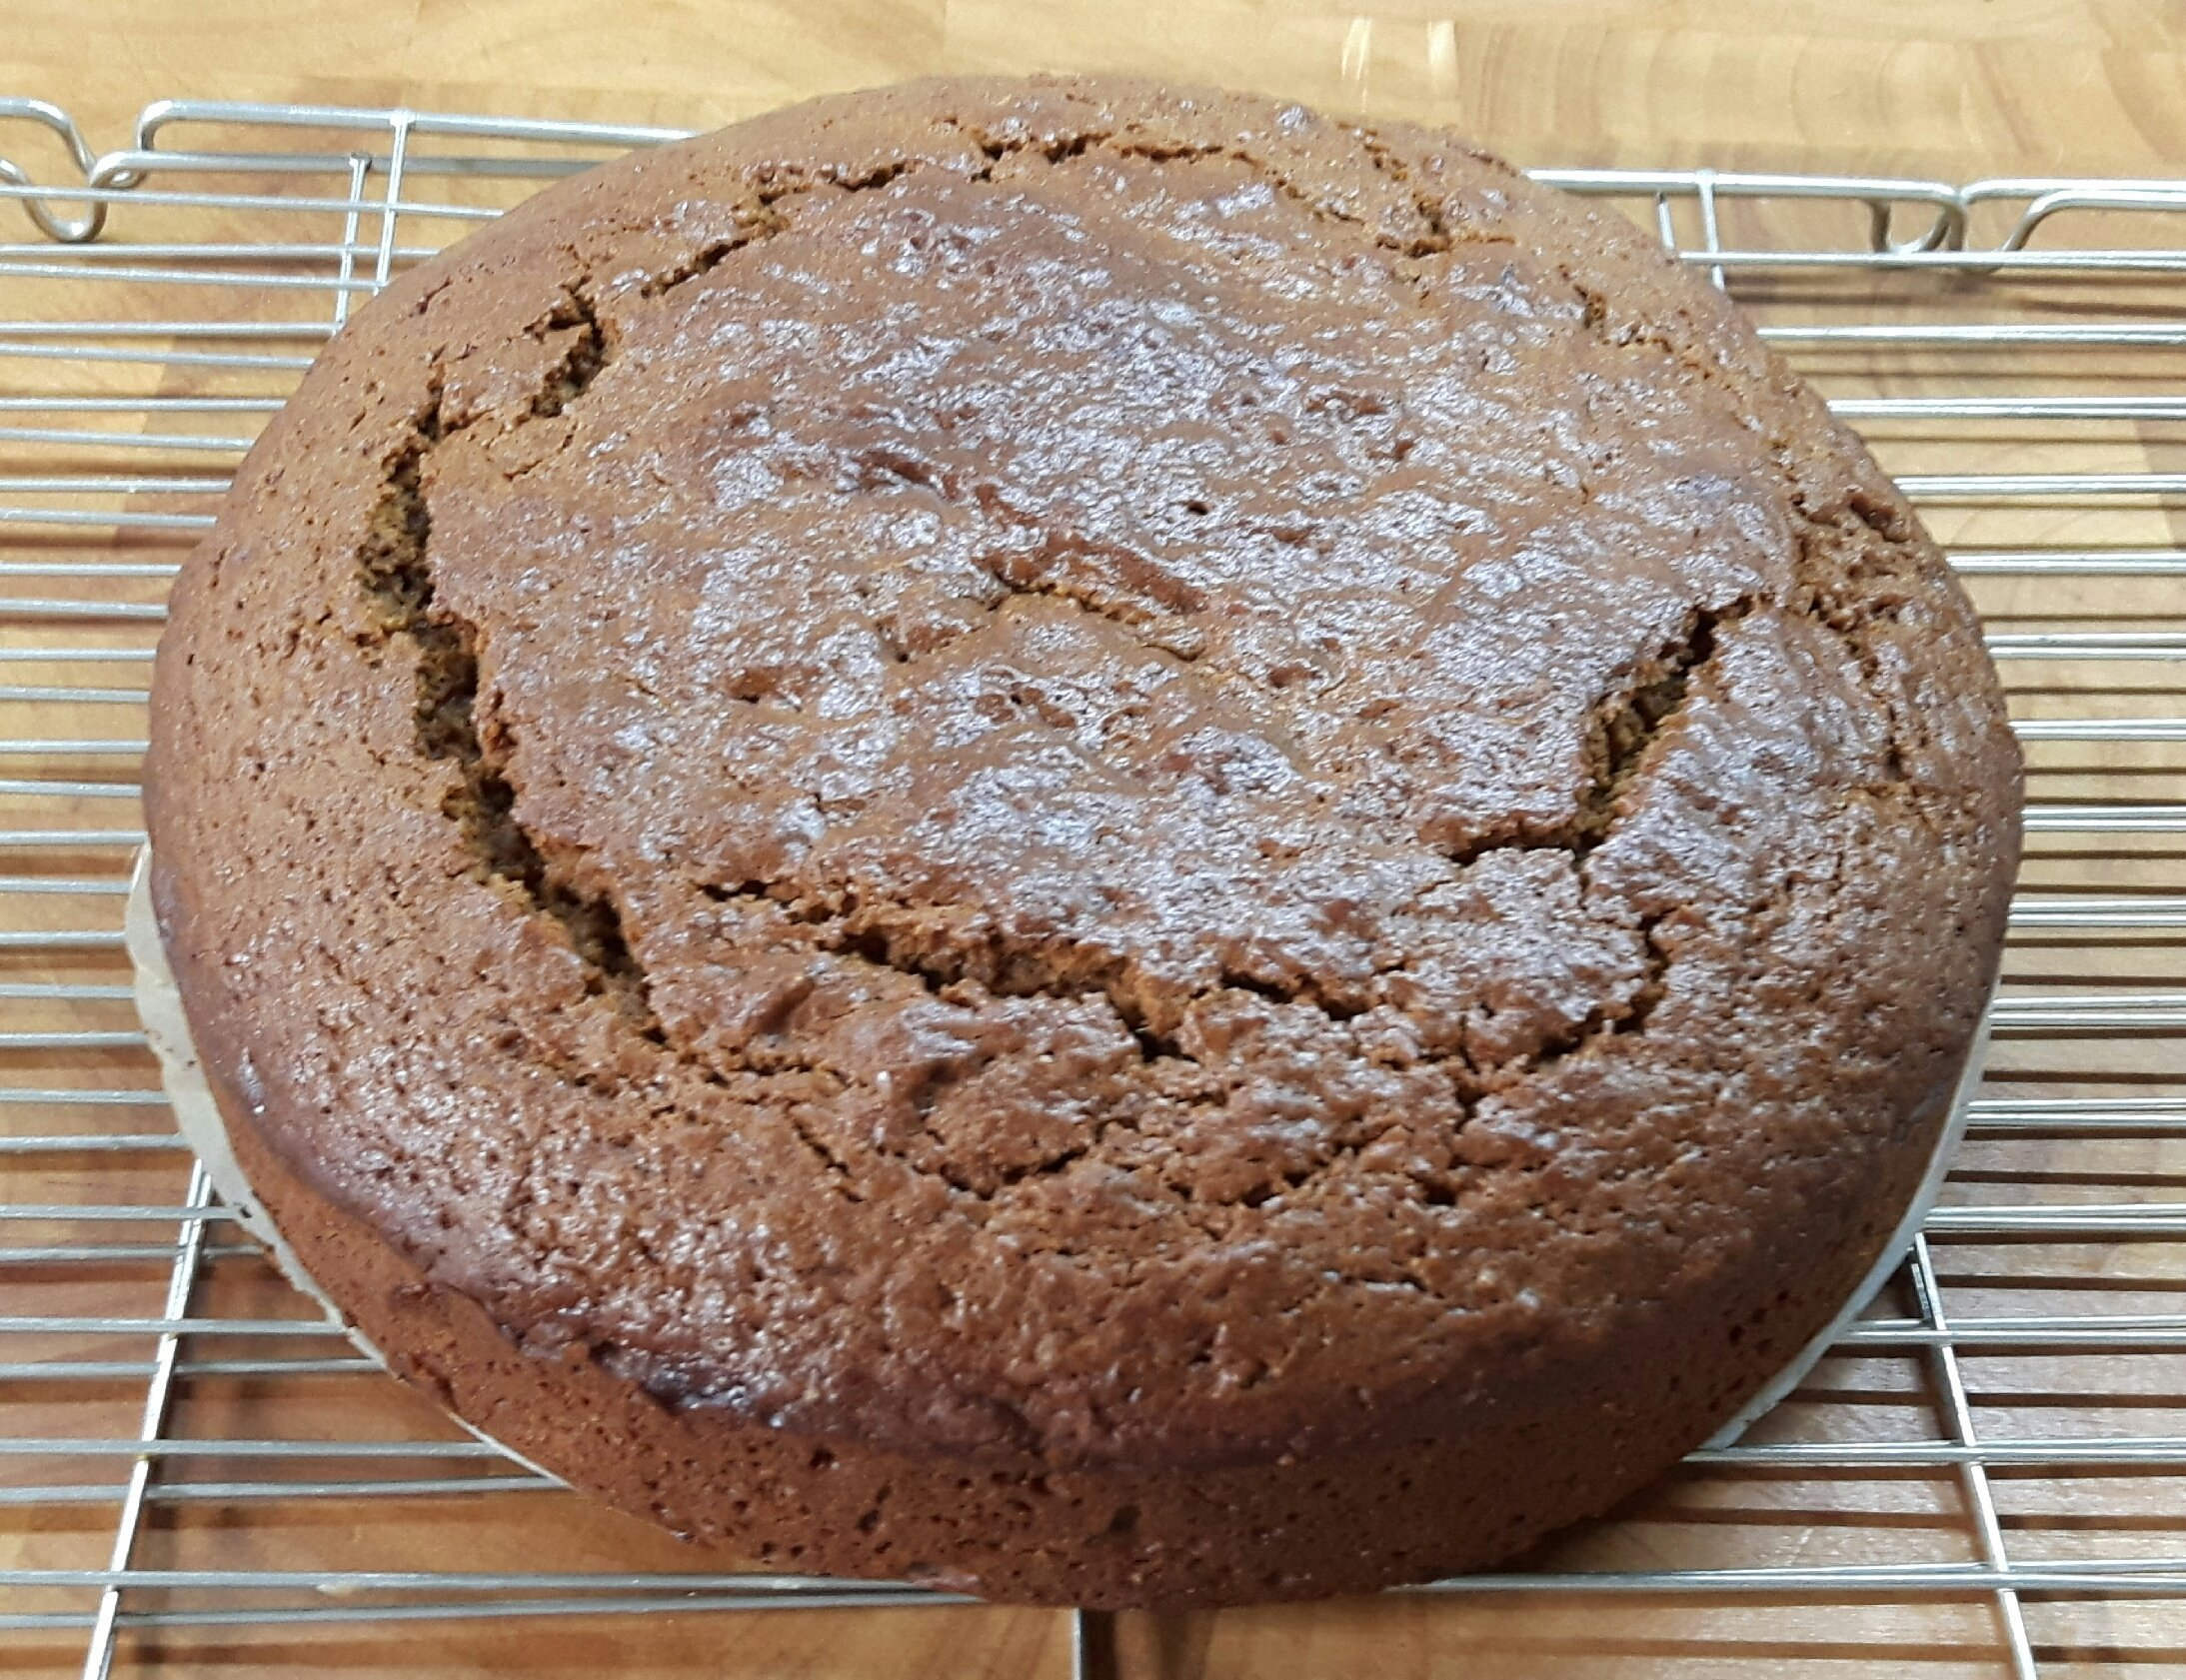 A baked moggy cake cooling on a rack.